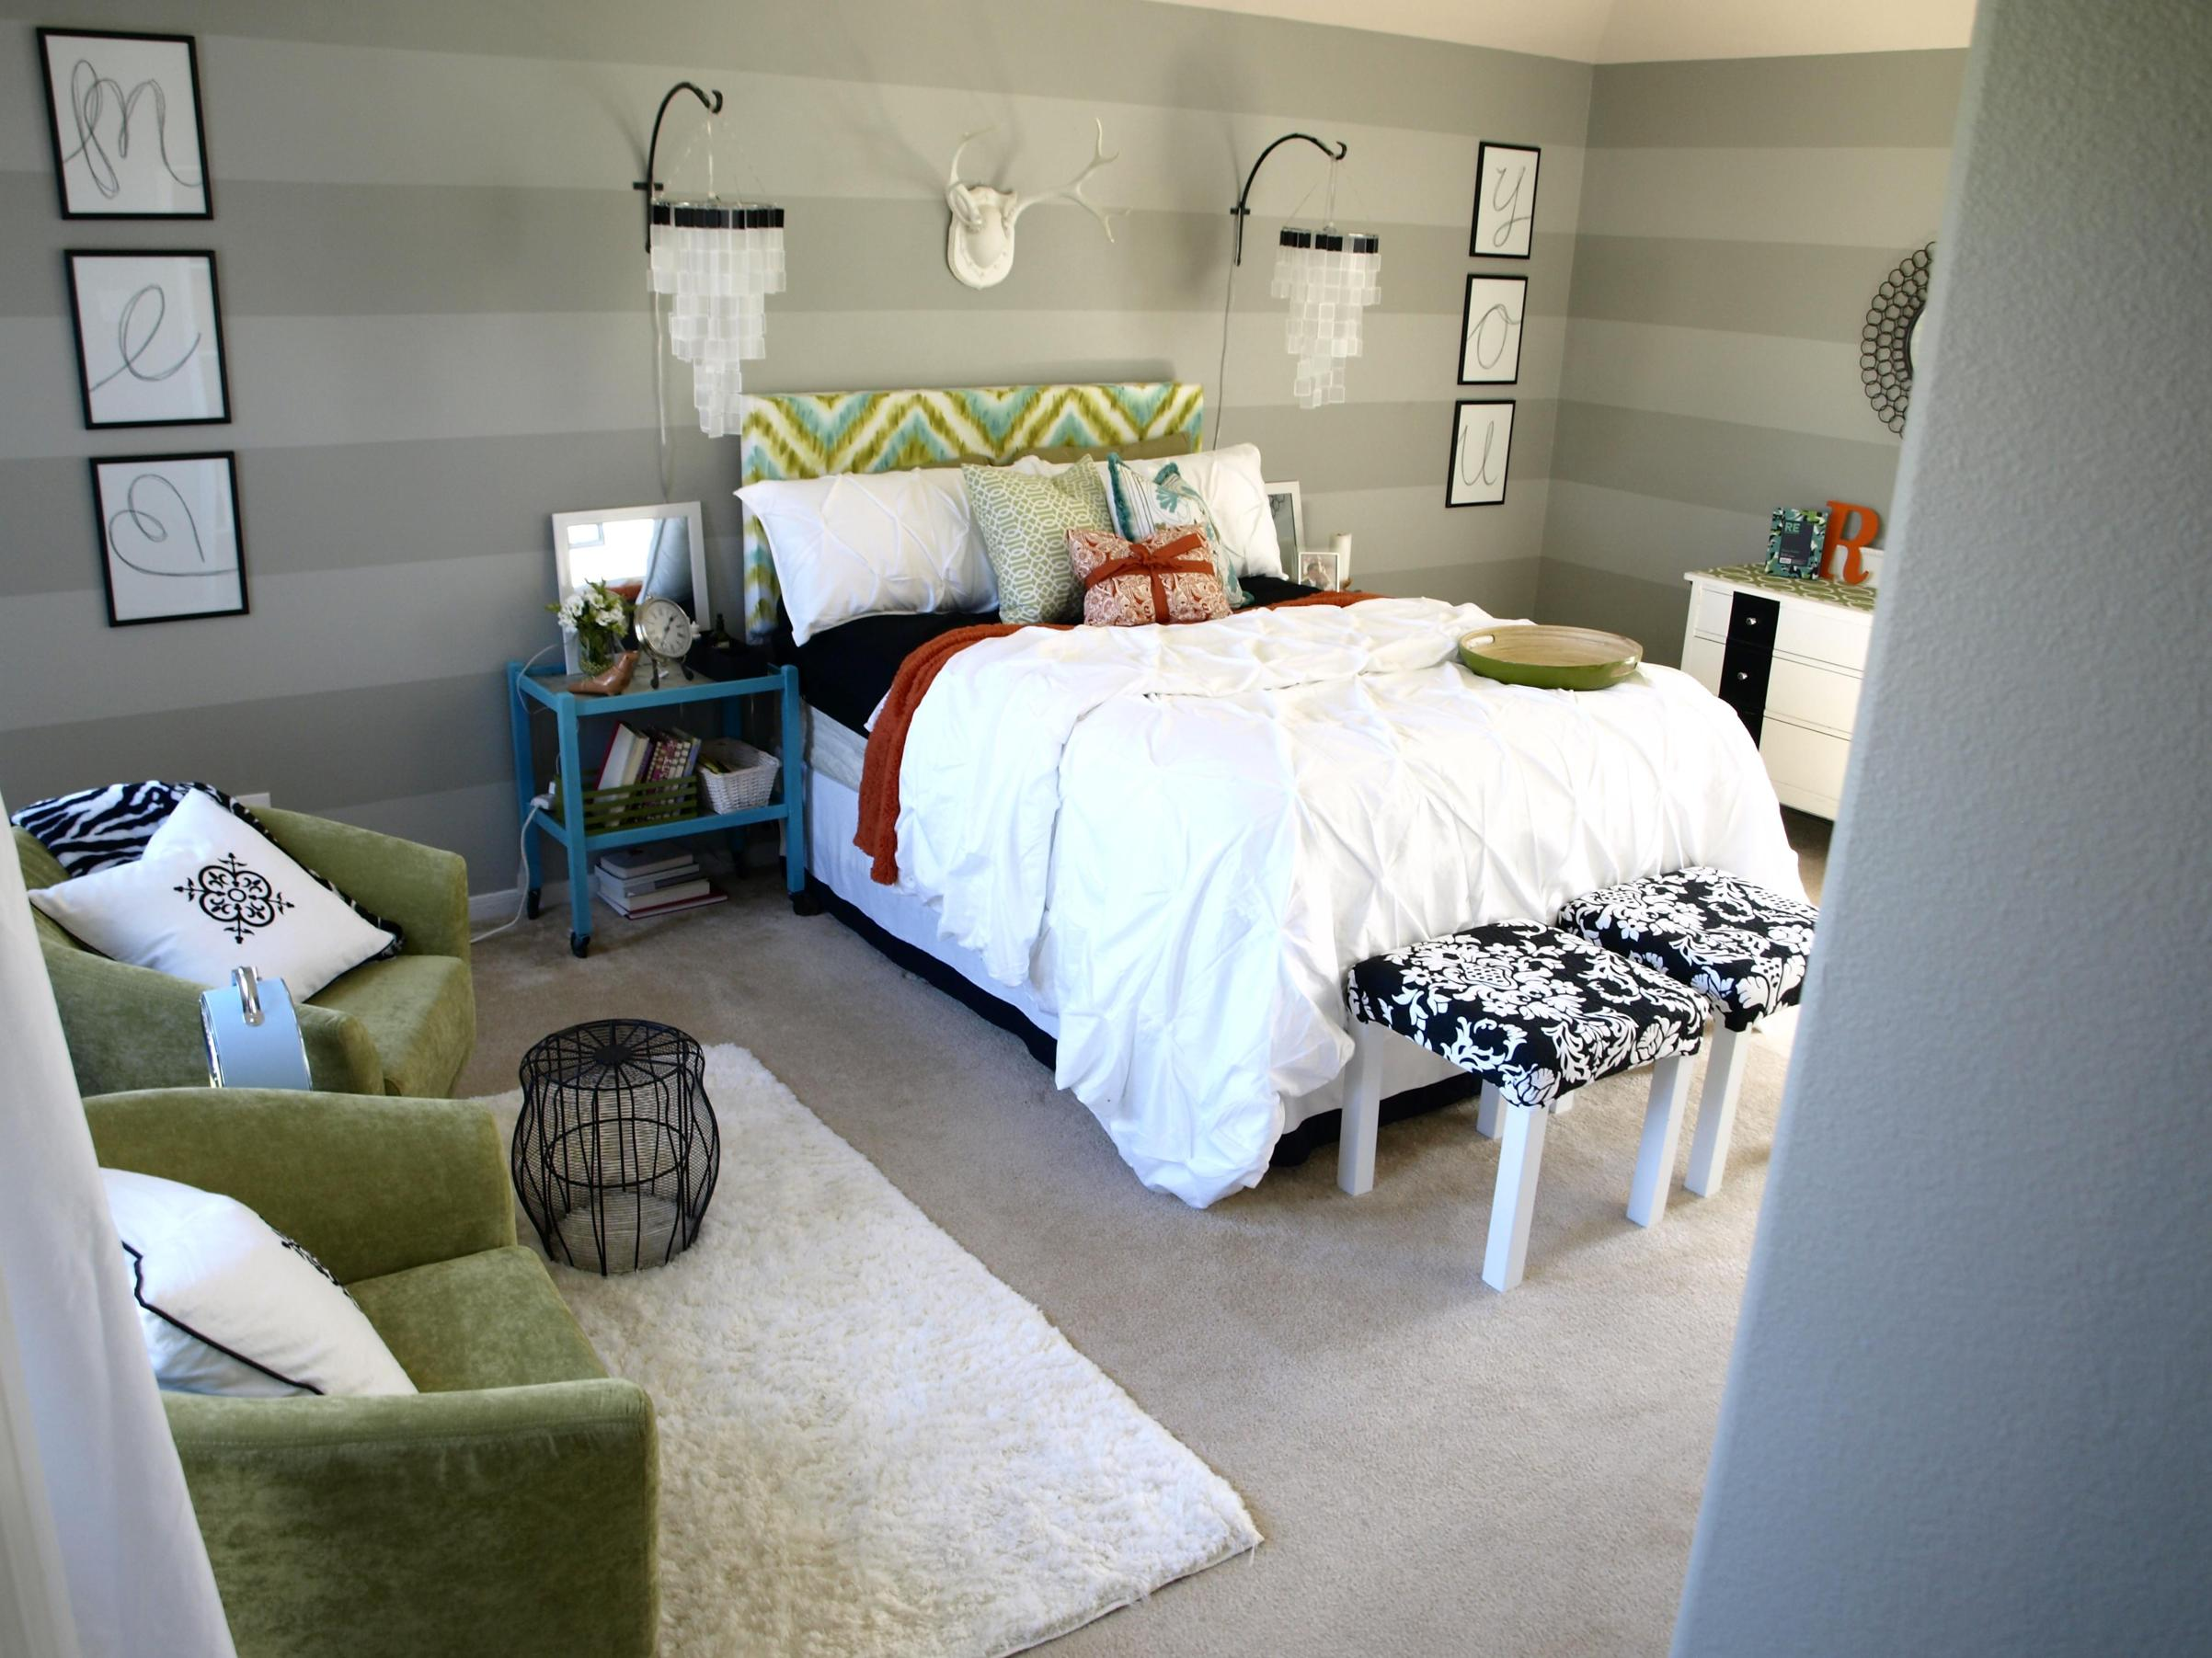 DIY Small Bedroom Makeover On a Budget 9